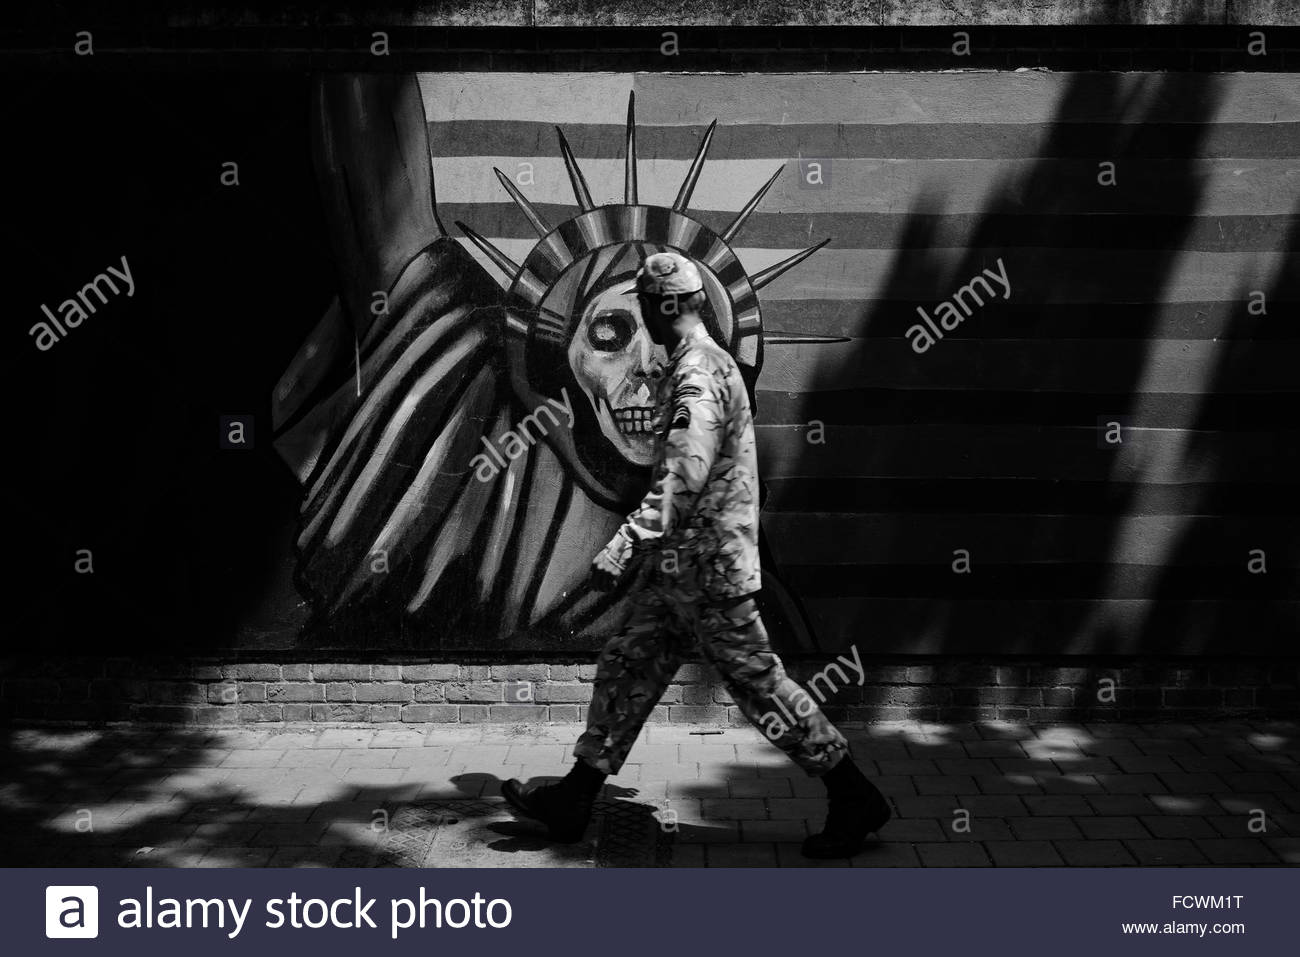 Iranian soldier looking at the Anti-American propaganda mural with an interpretation of the Statue of Liberty, at - Stock Image